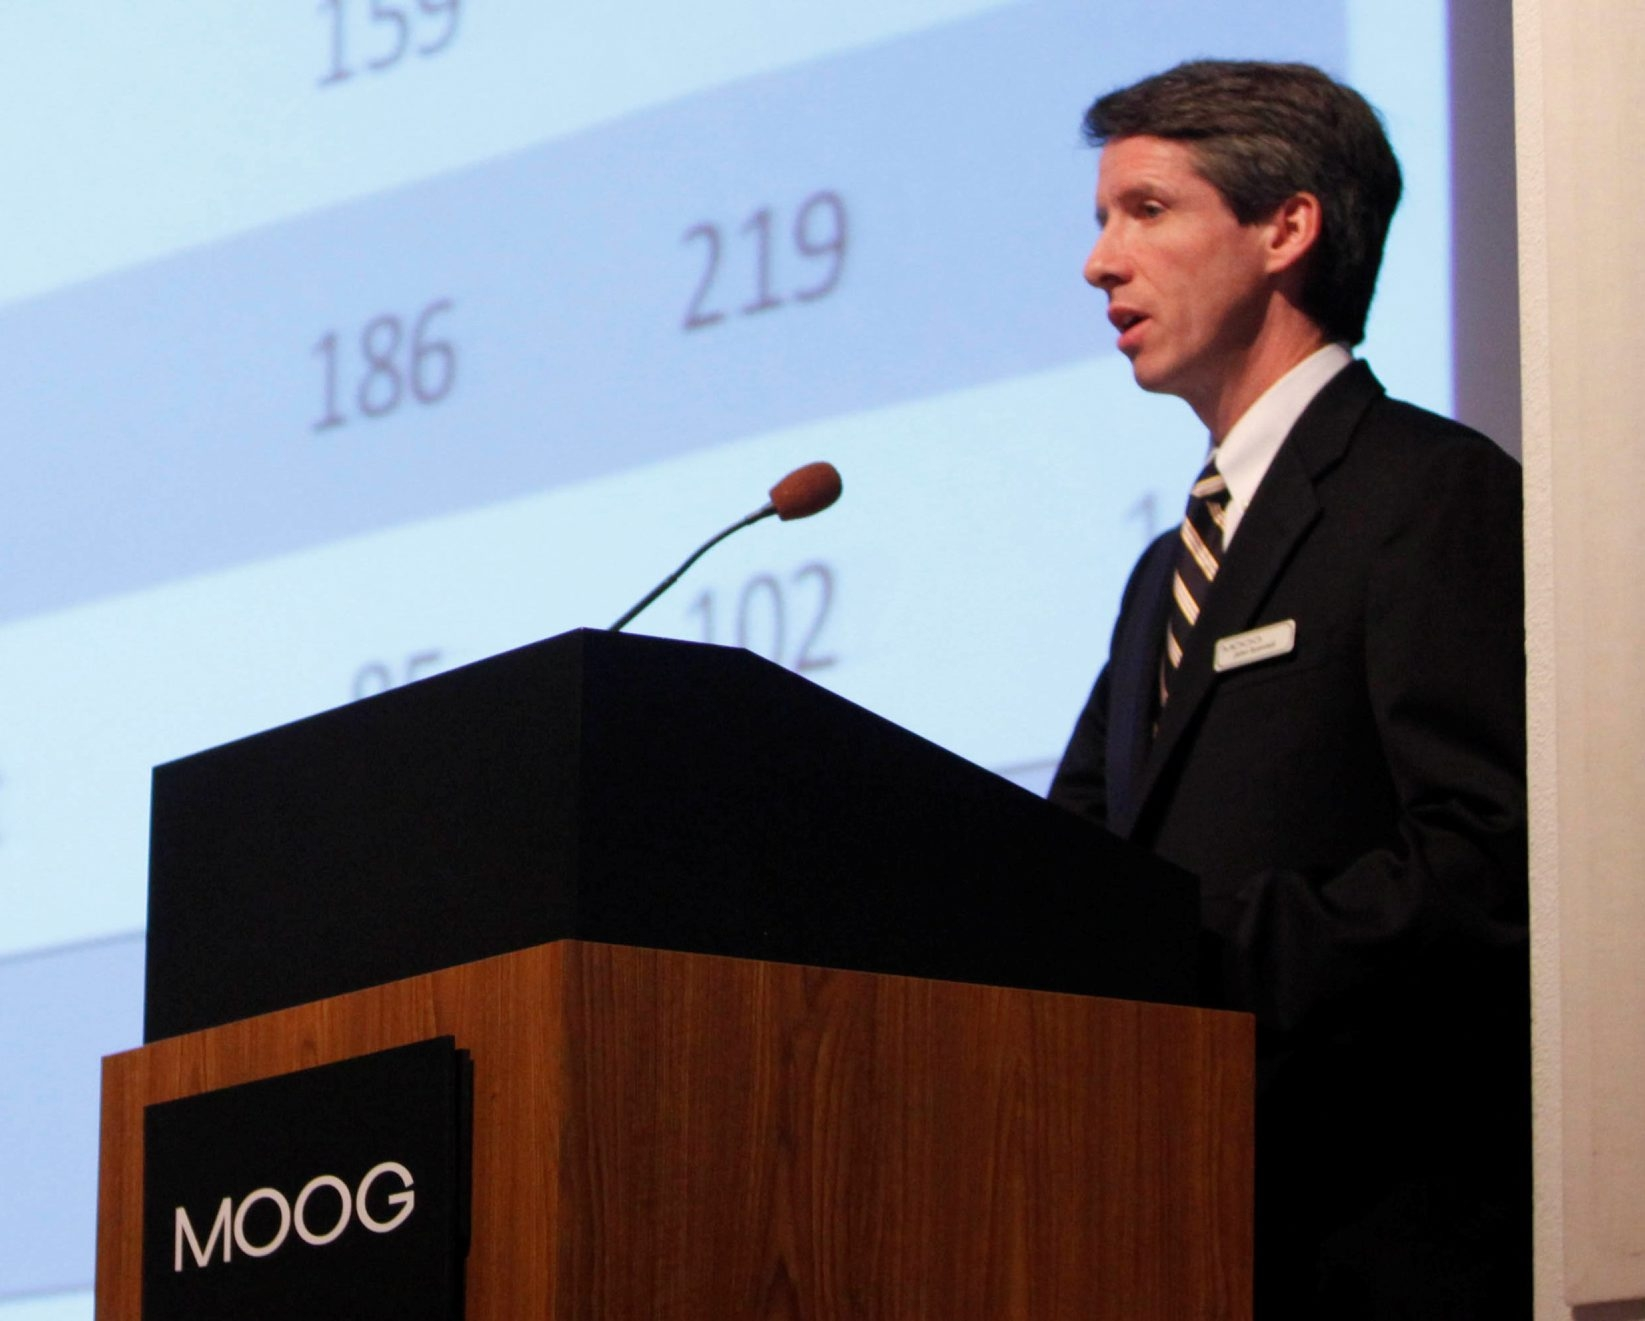 Moog Inc. CEO John Scannell said Friday that the company is adjusting to the new economic reality in defense spending.